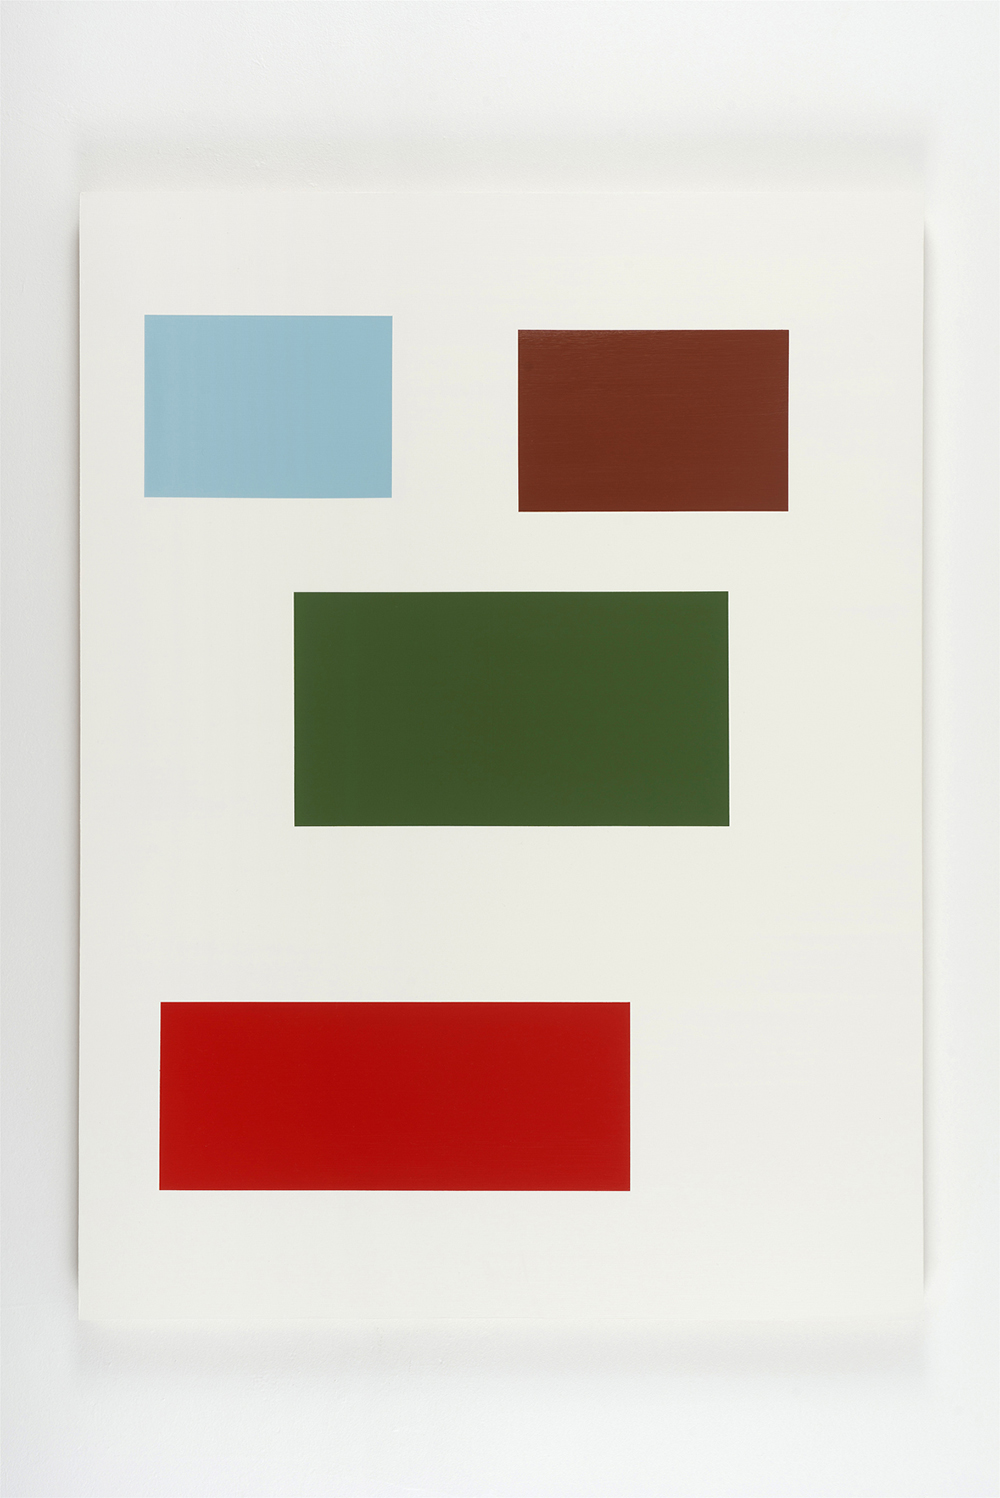 Large Survey (Mana), 2015, by Tom McGlynn. Acrylic and gouache on wood panel, designed as a white square with blue, orange, green and brown squares.